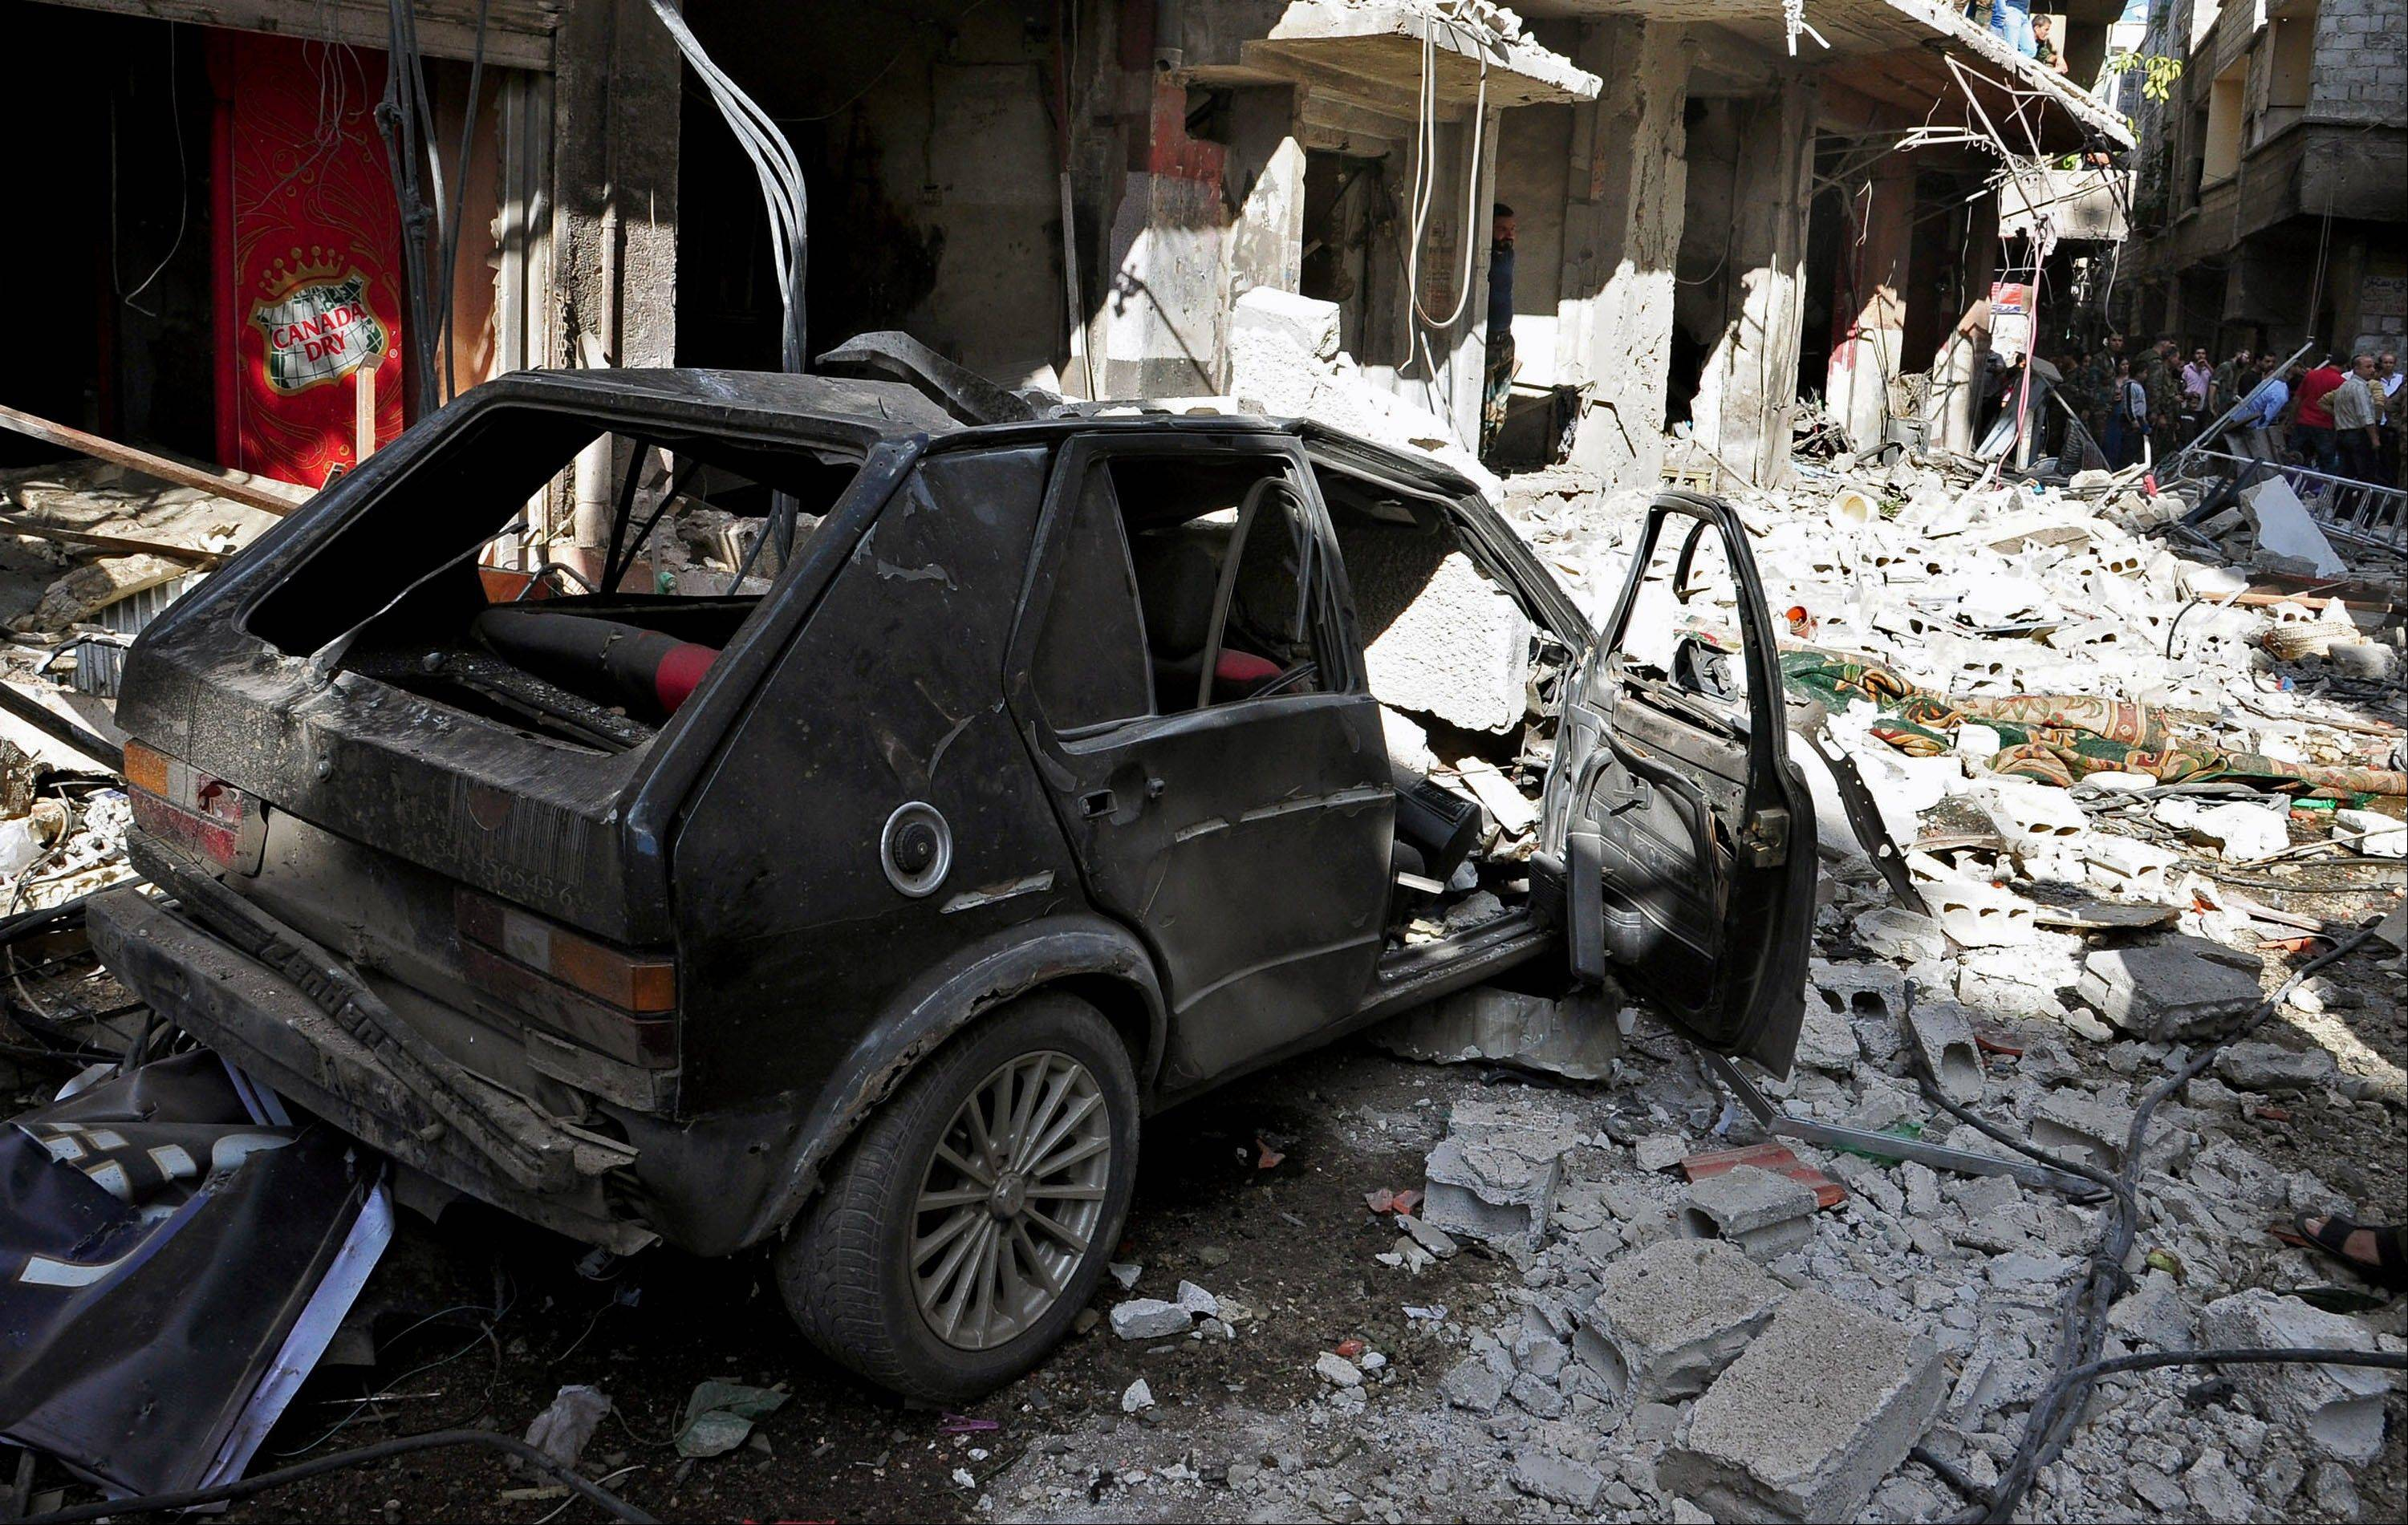 Syrian citizens gather at the scene of a car bomb explosion in the residential al-Tadhamon neighborhood in Damascus, Syria, Tuesday, Sept. 24, 2013.